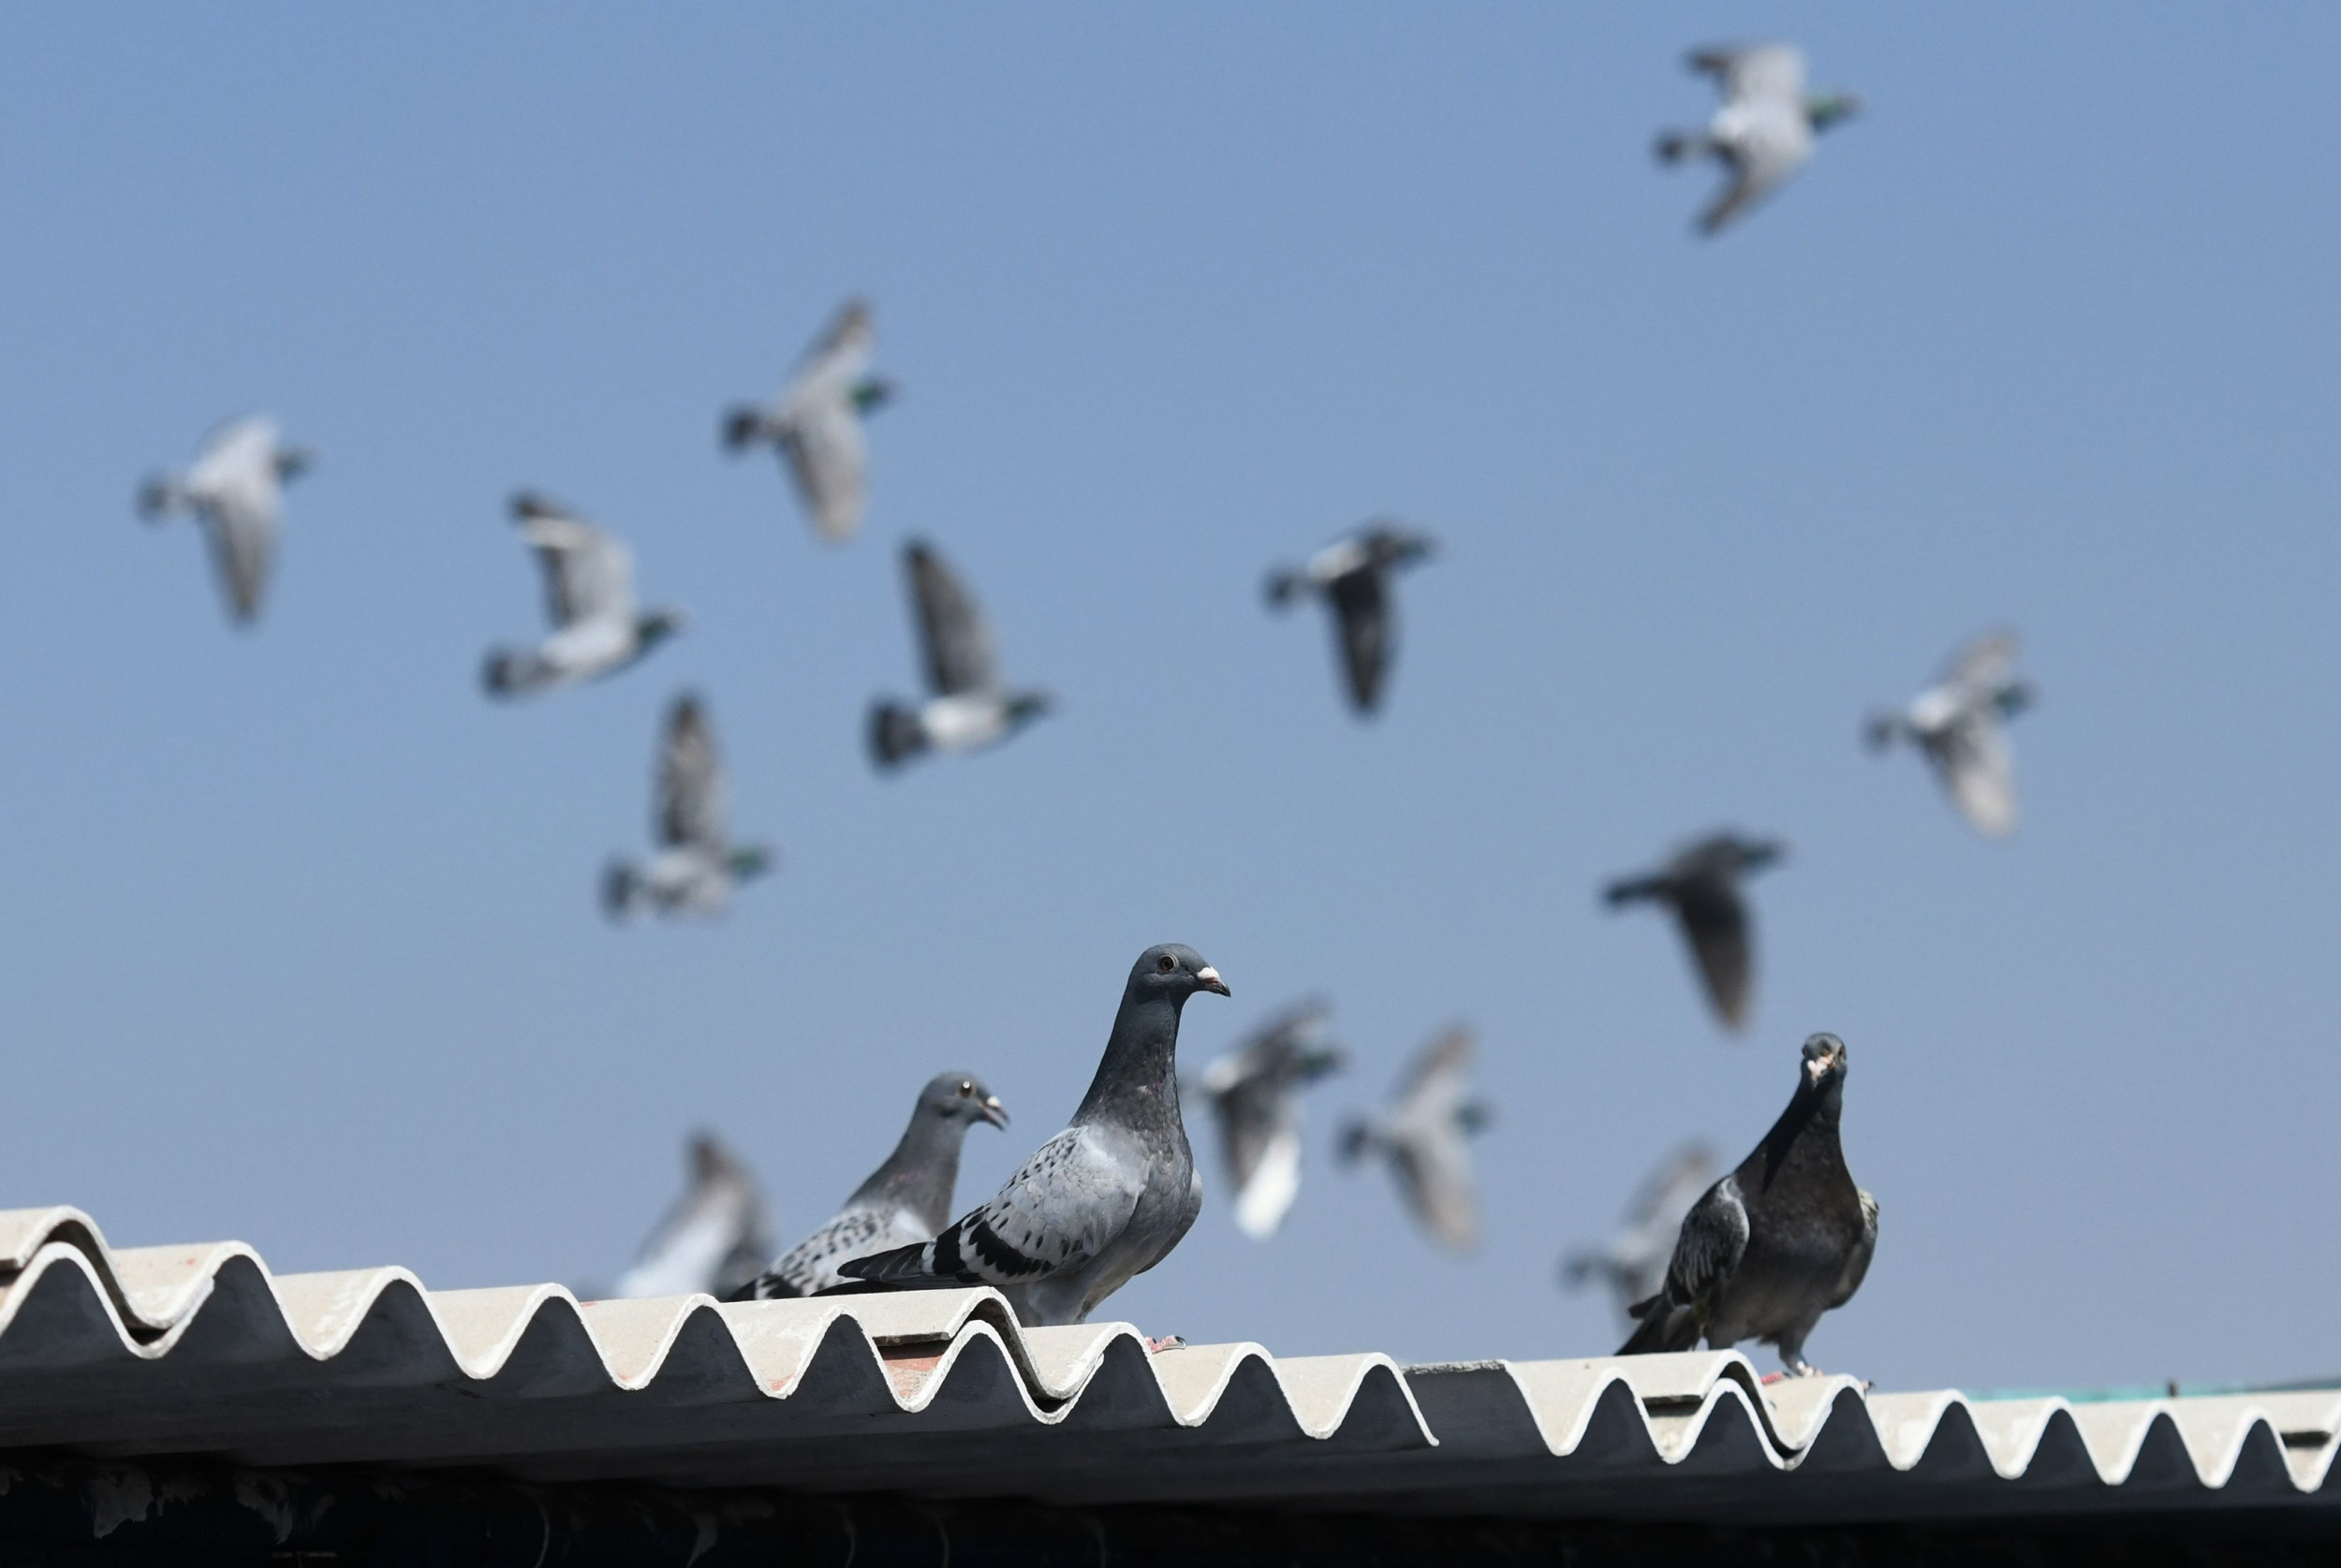 Indiana Fire Kills Nearly 2 000 Racing Pigeons One Day Before Worldwide Competition